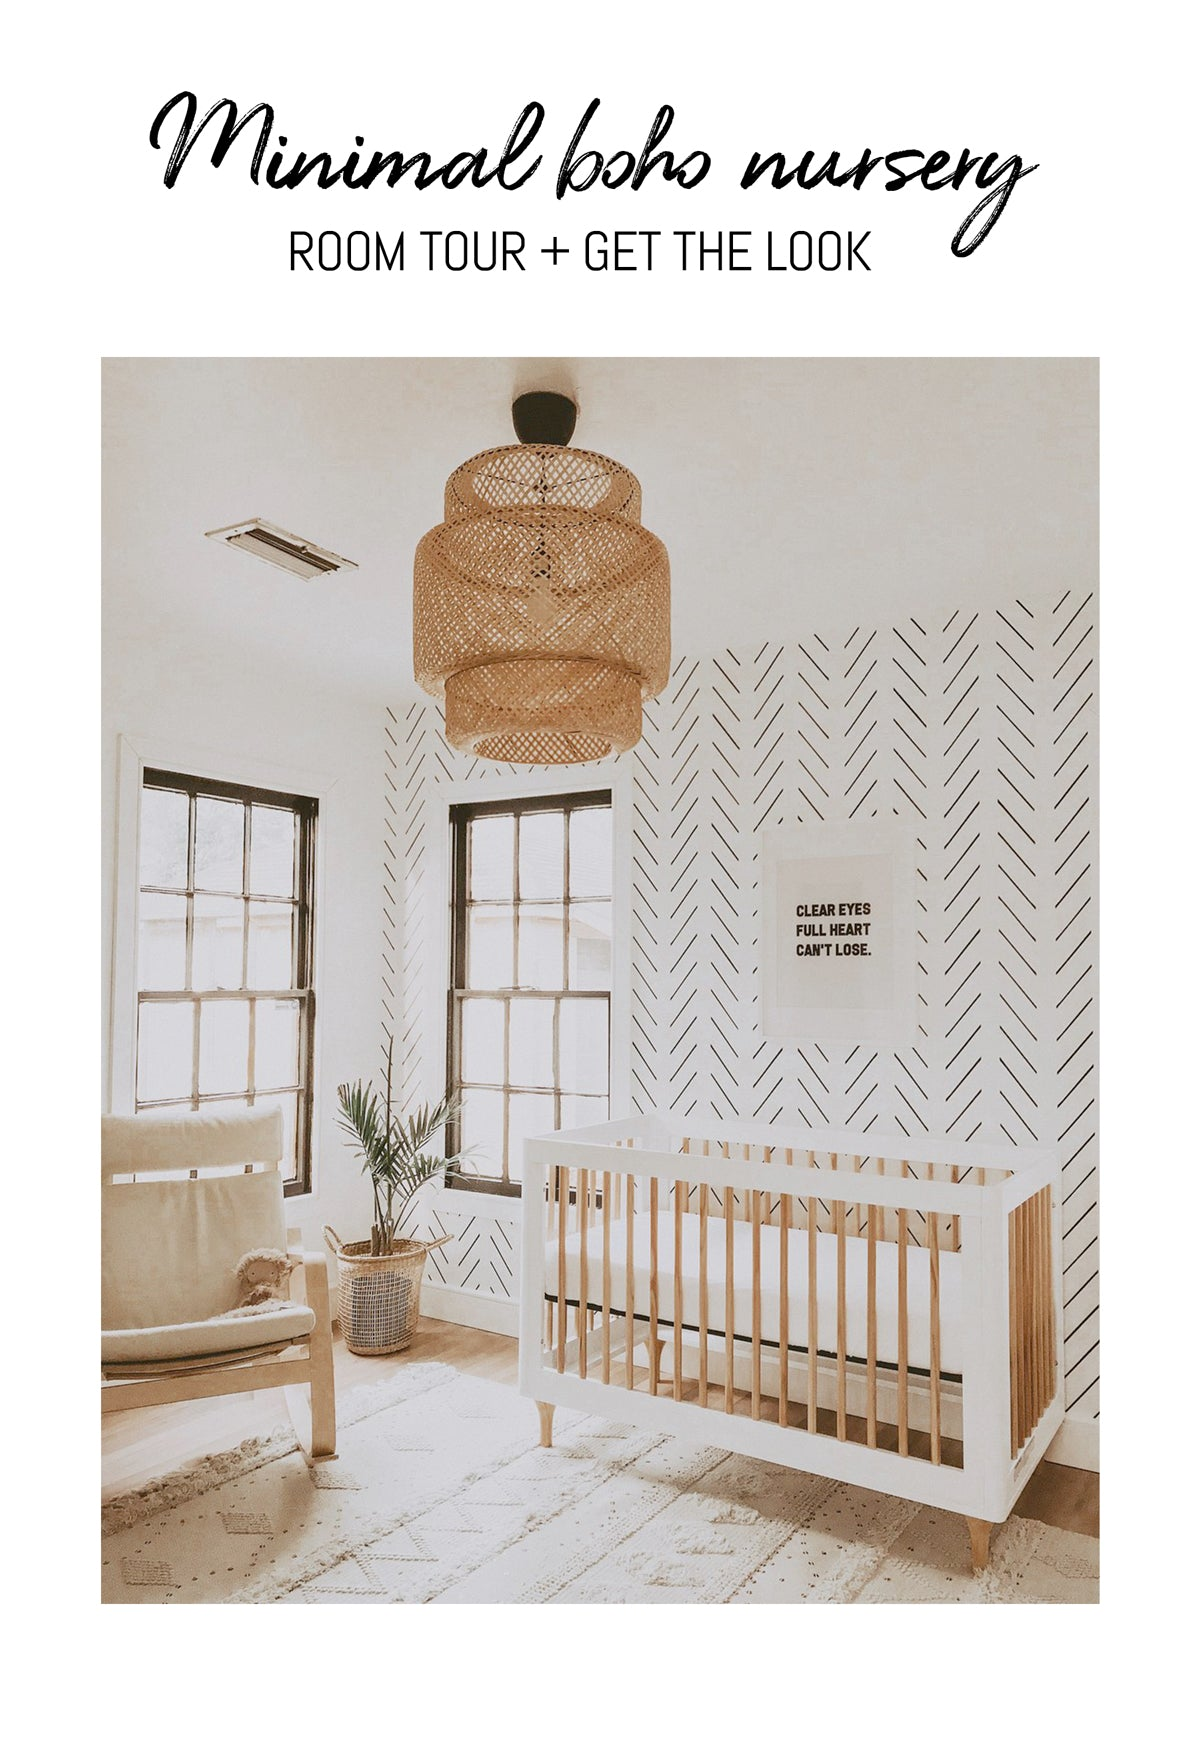 minimal boho nursery design with details to shop the look